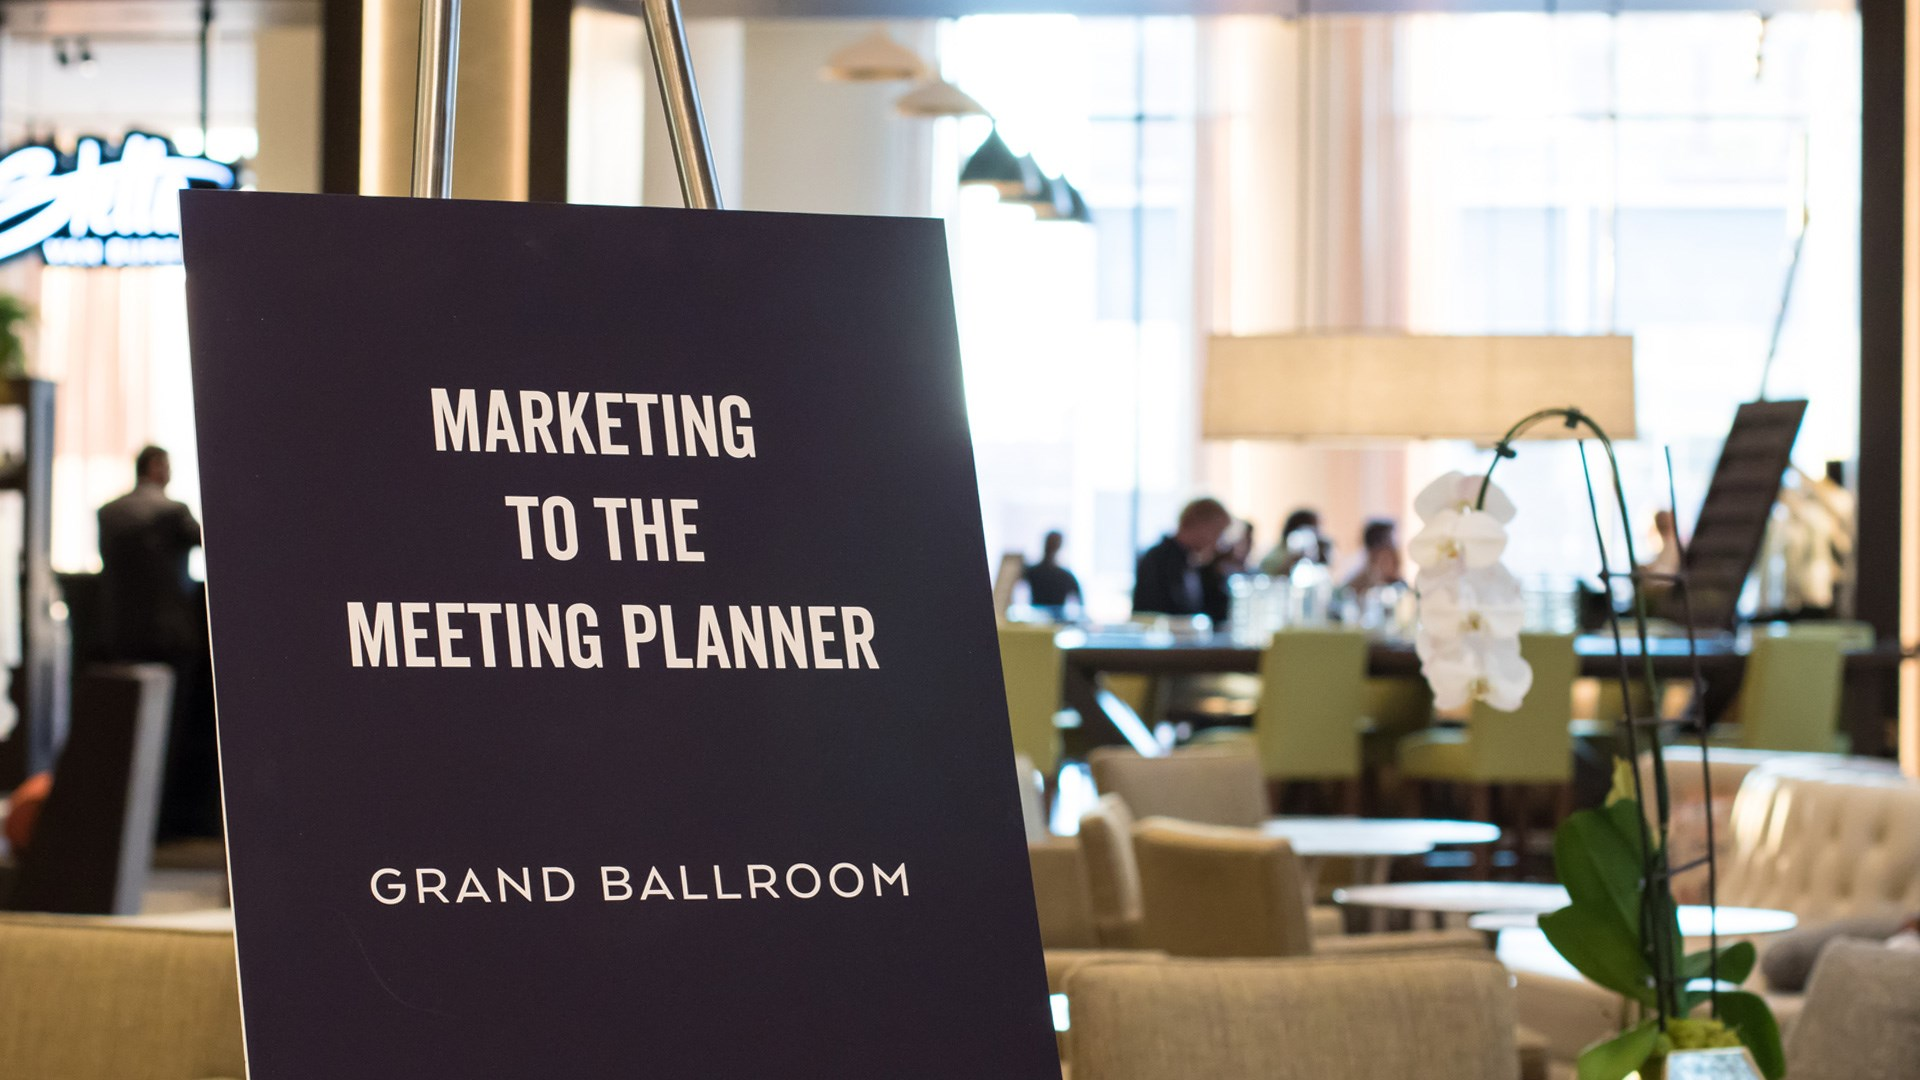 Marketing to the Meeting Planner